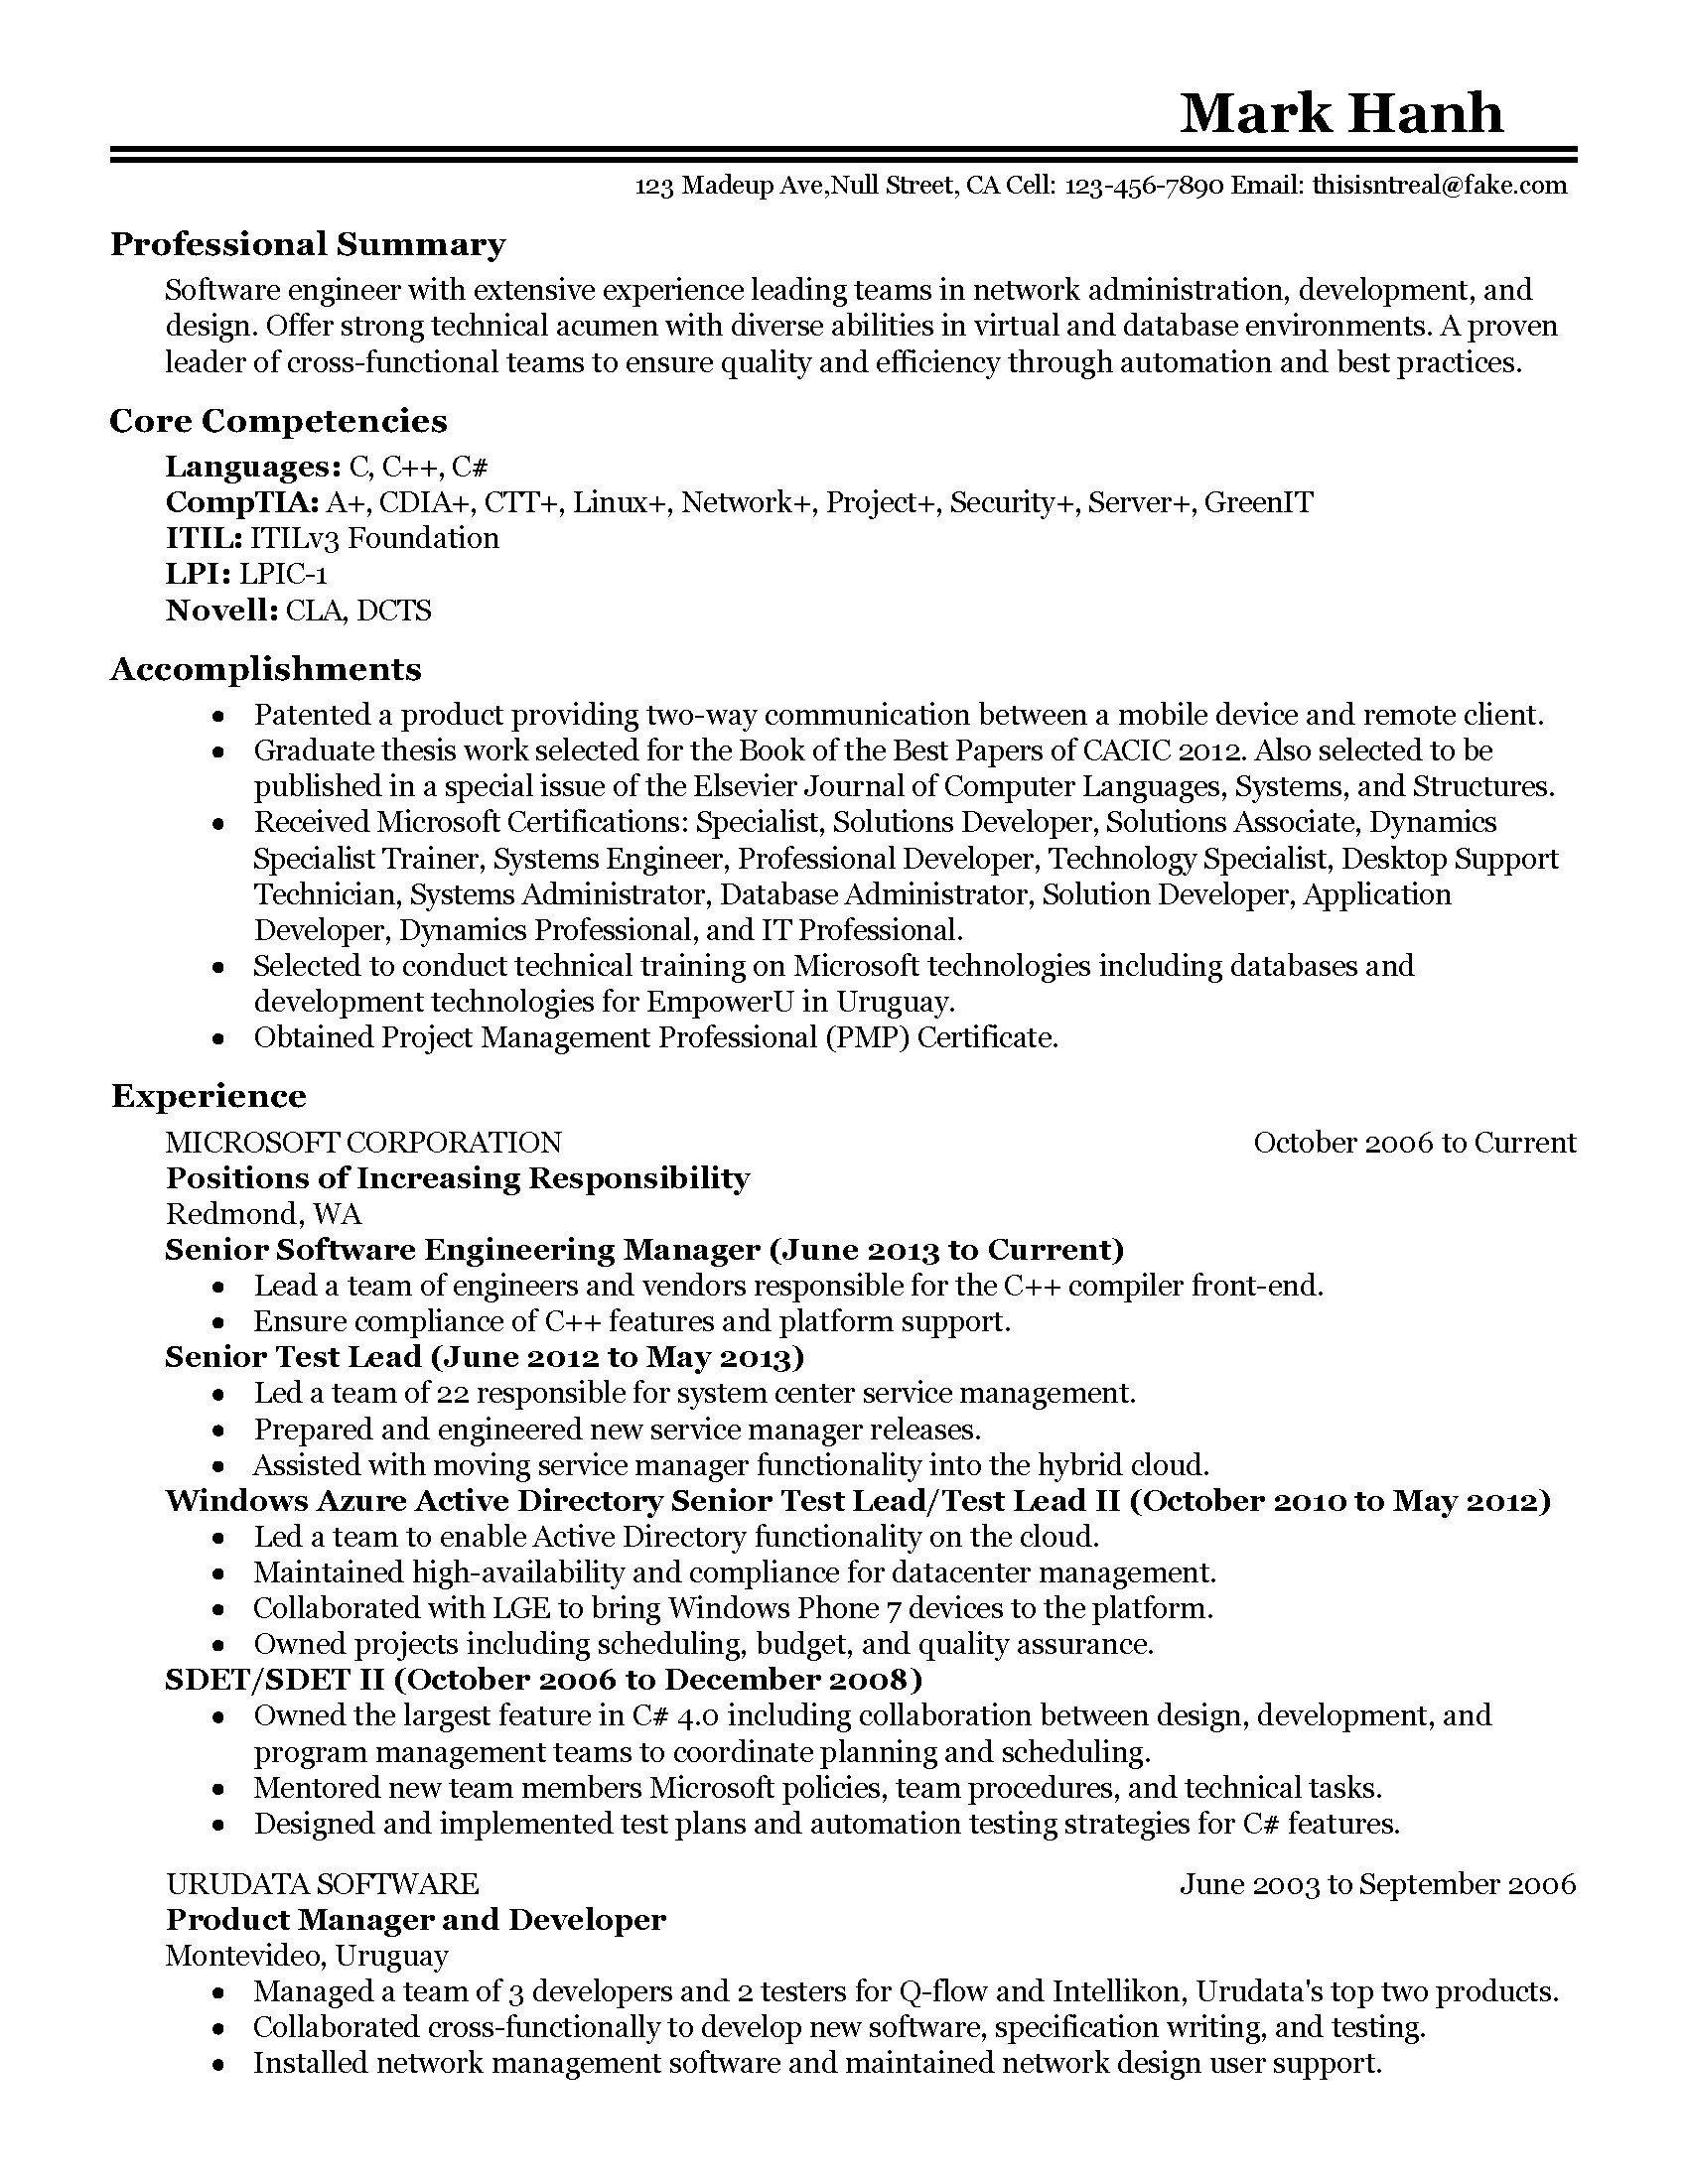 Software Professional Resume Samples Professional Software Engineering Manager Templates To Showcase